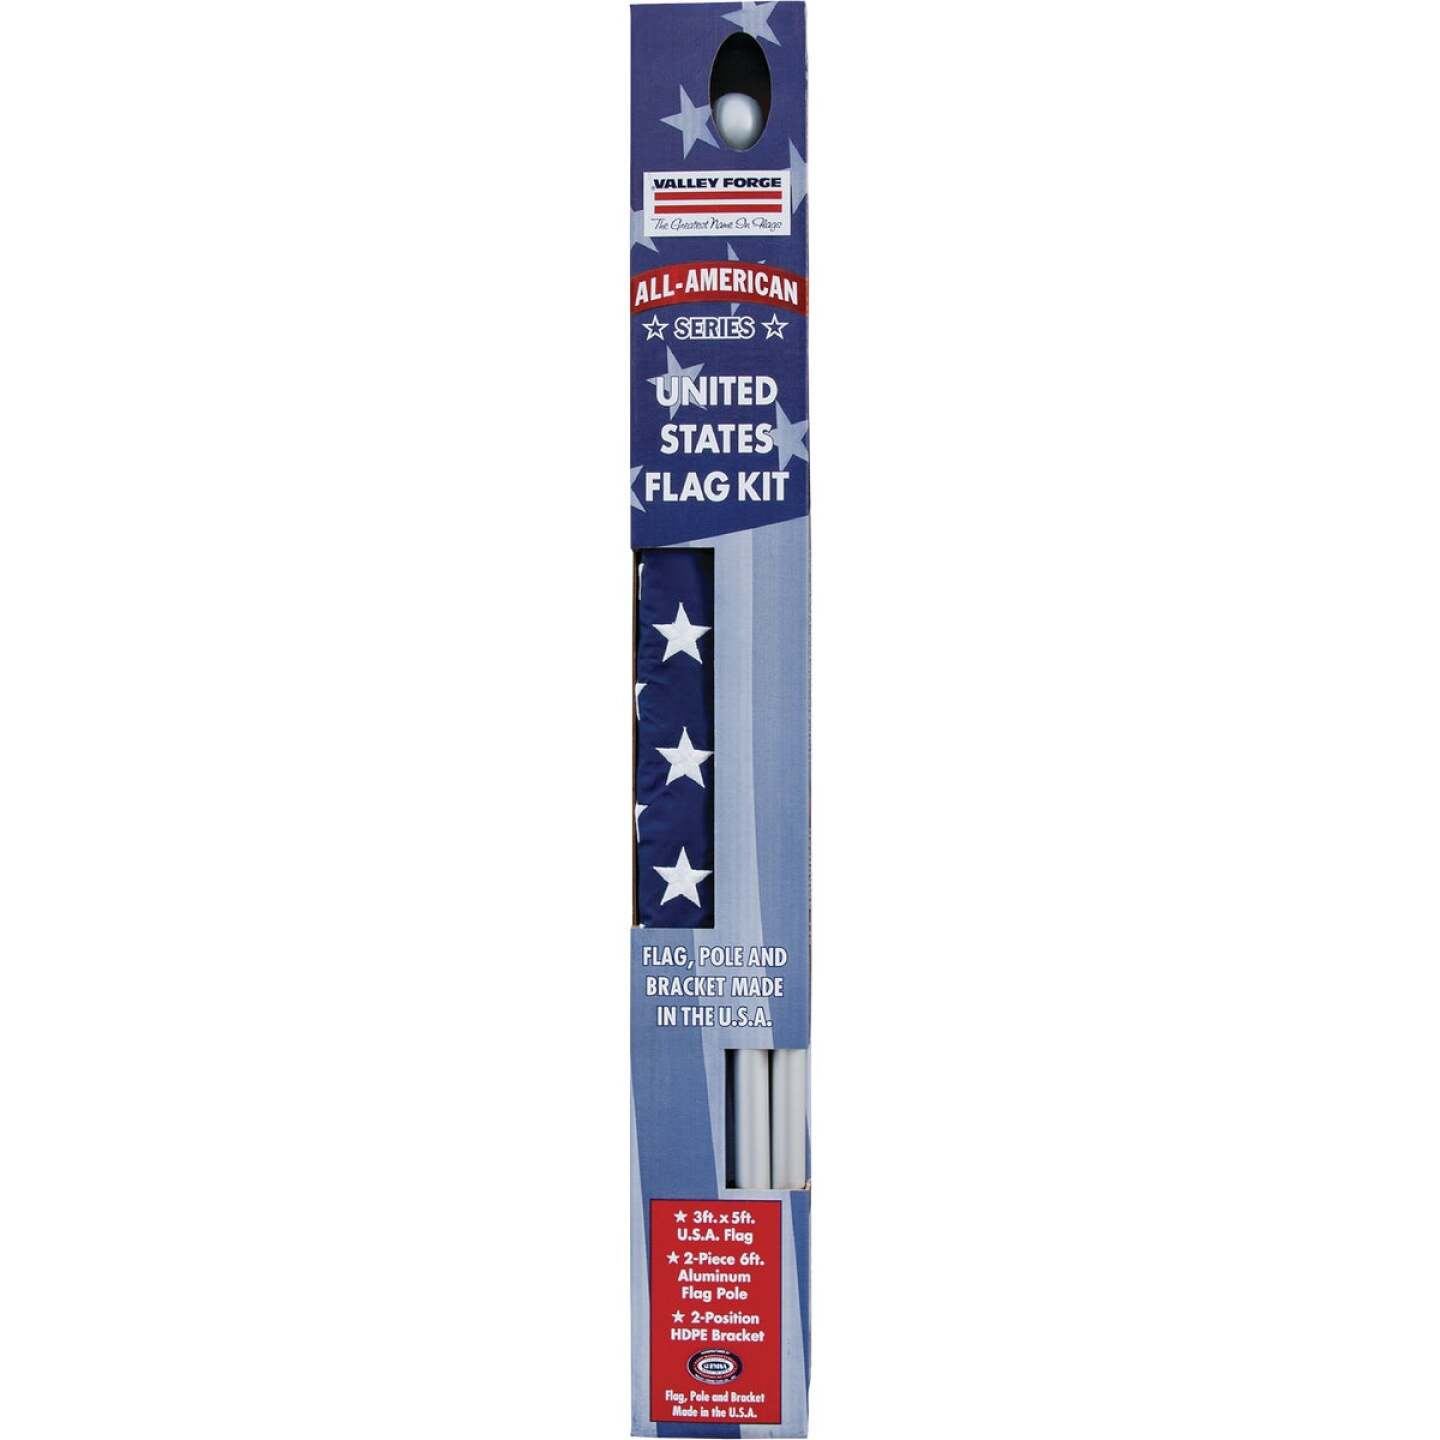 Valley Forge 3.5 Ft. x 5 Ft. Nylon American Flag & 6 Ft. Pole Kit Image 3